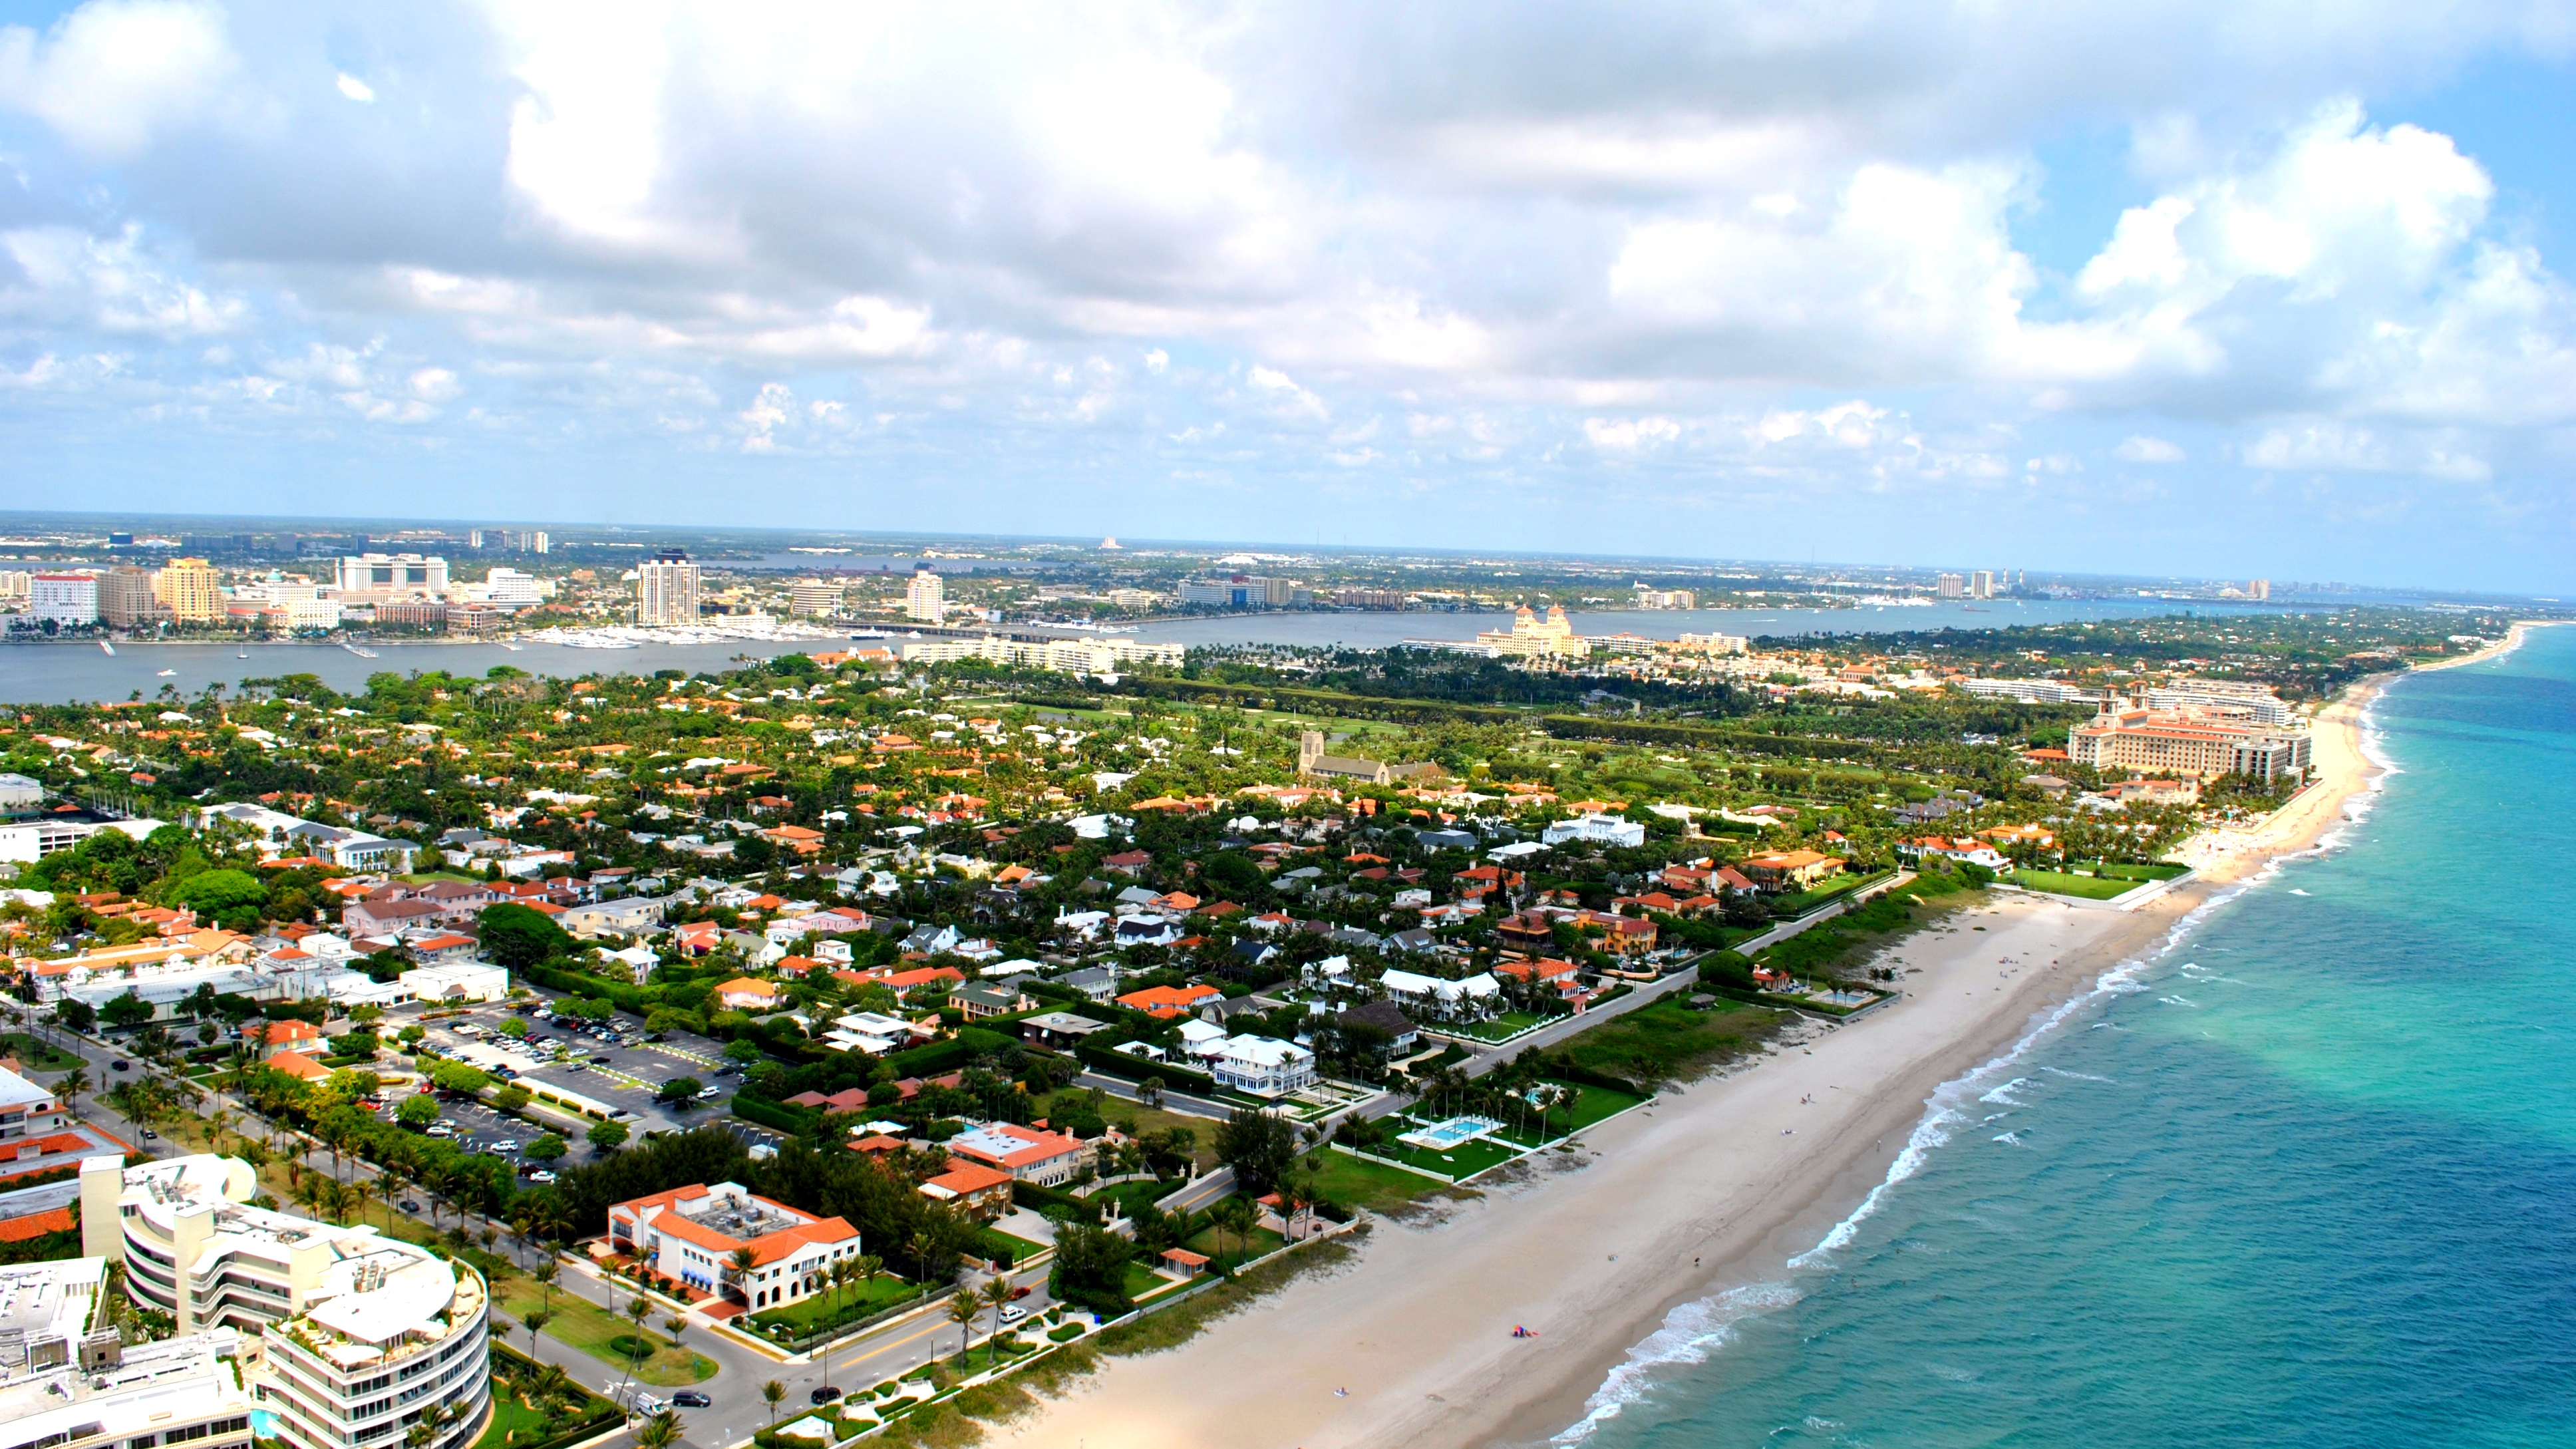 Aerial view of Palm Beach, Florida. (Photo by Michael Kagdis/Proper Media Group/Wikipedia)